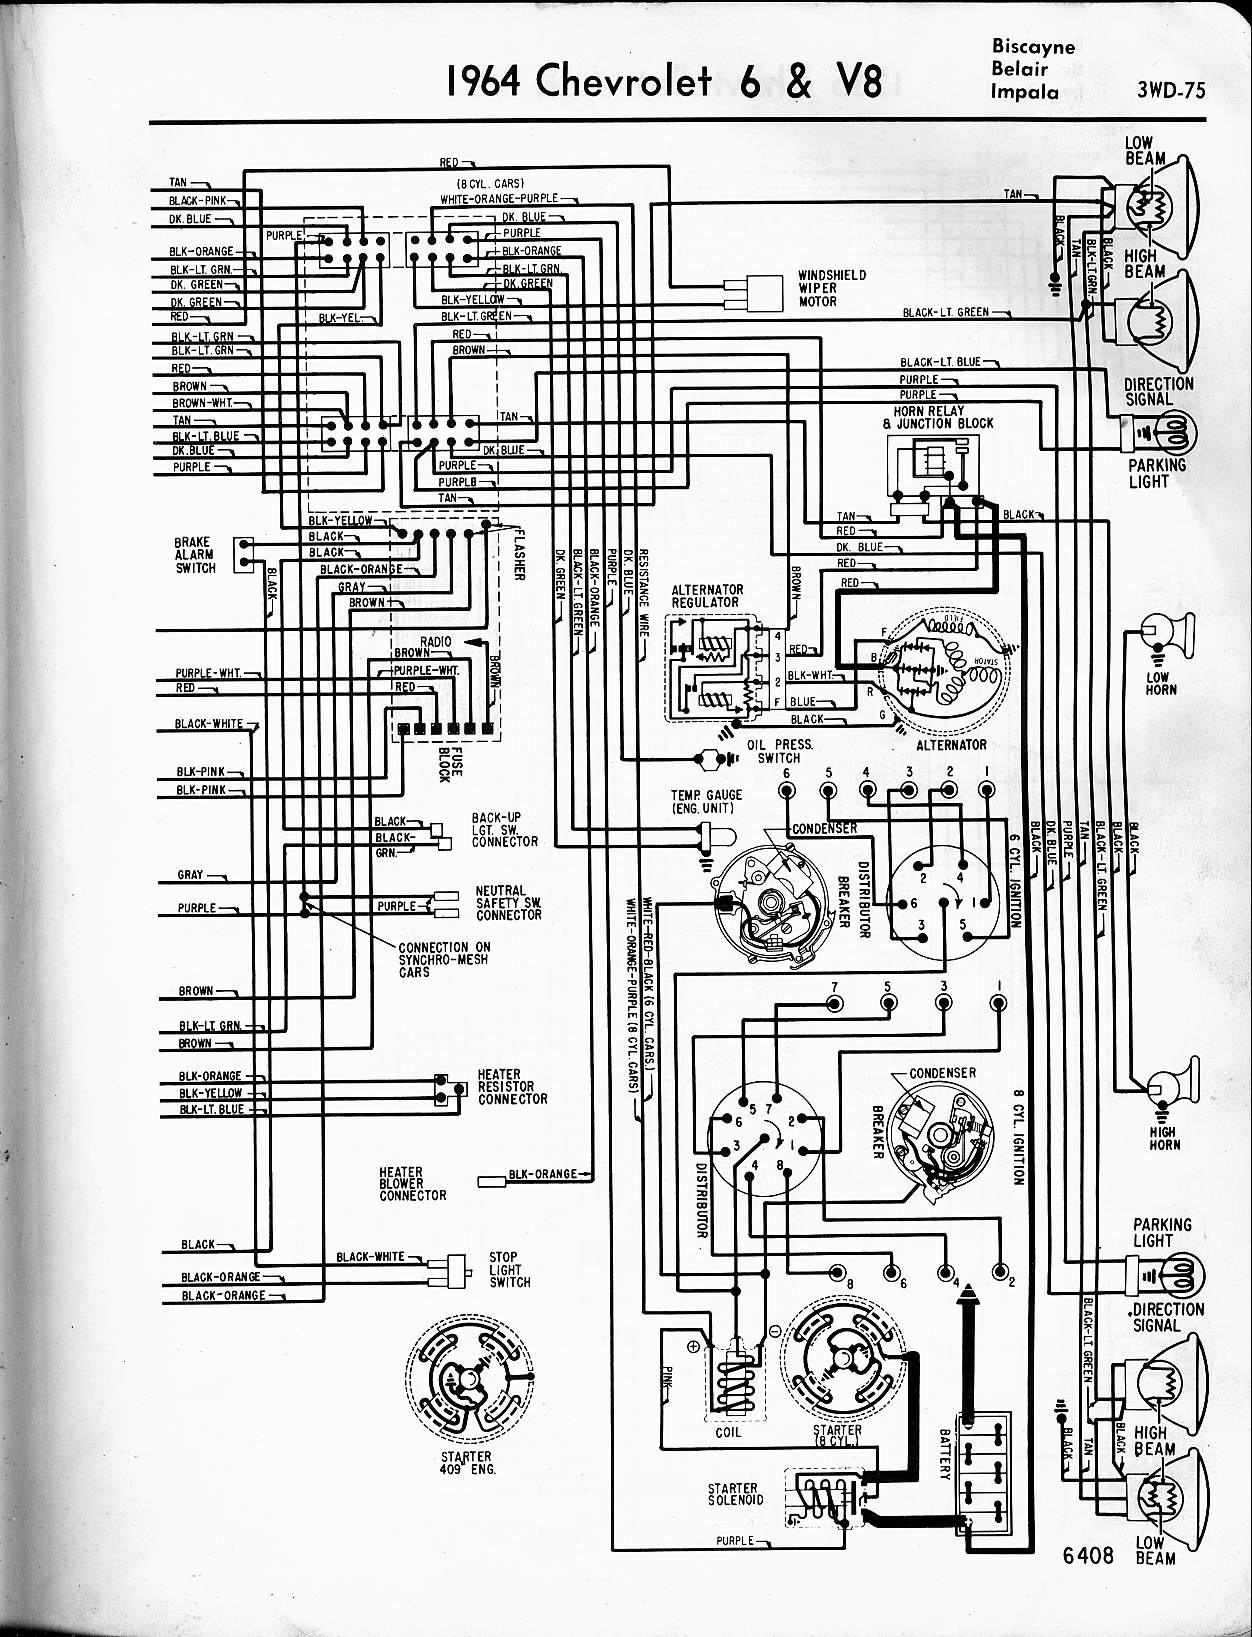 64 chevy wiring harness diagram data wiring diagram today Chevy Truck Wiring Harness Standard 64 impala wiring diagram schema wiring diagram 67 72 chevy truck wiring diagram 57 65